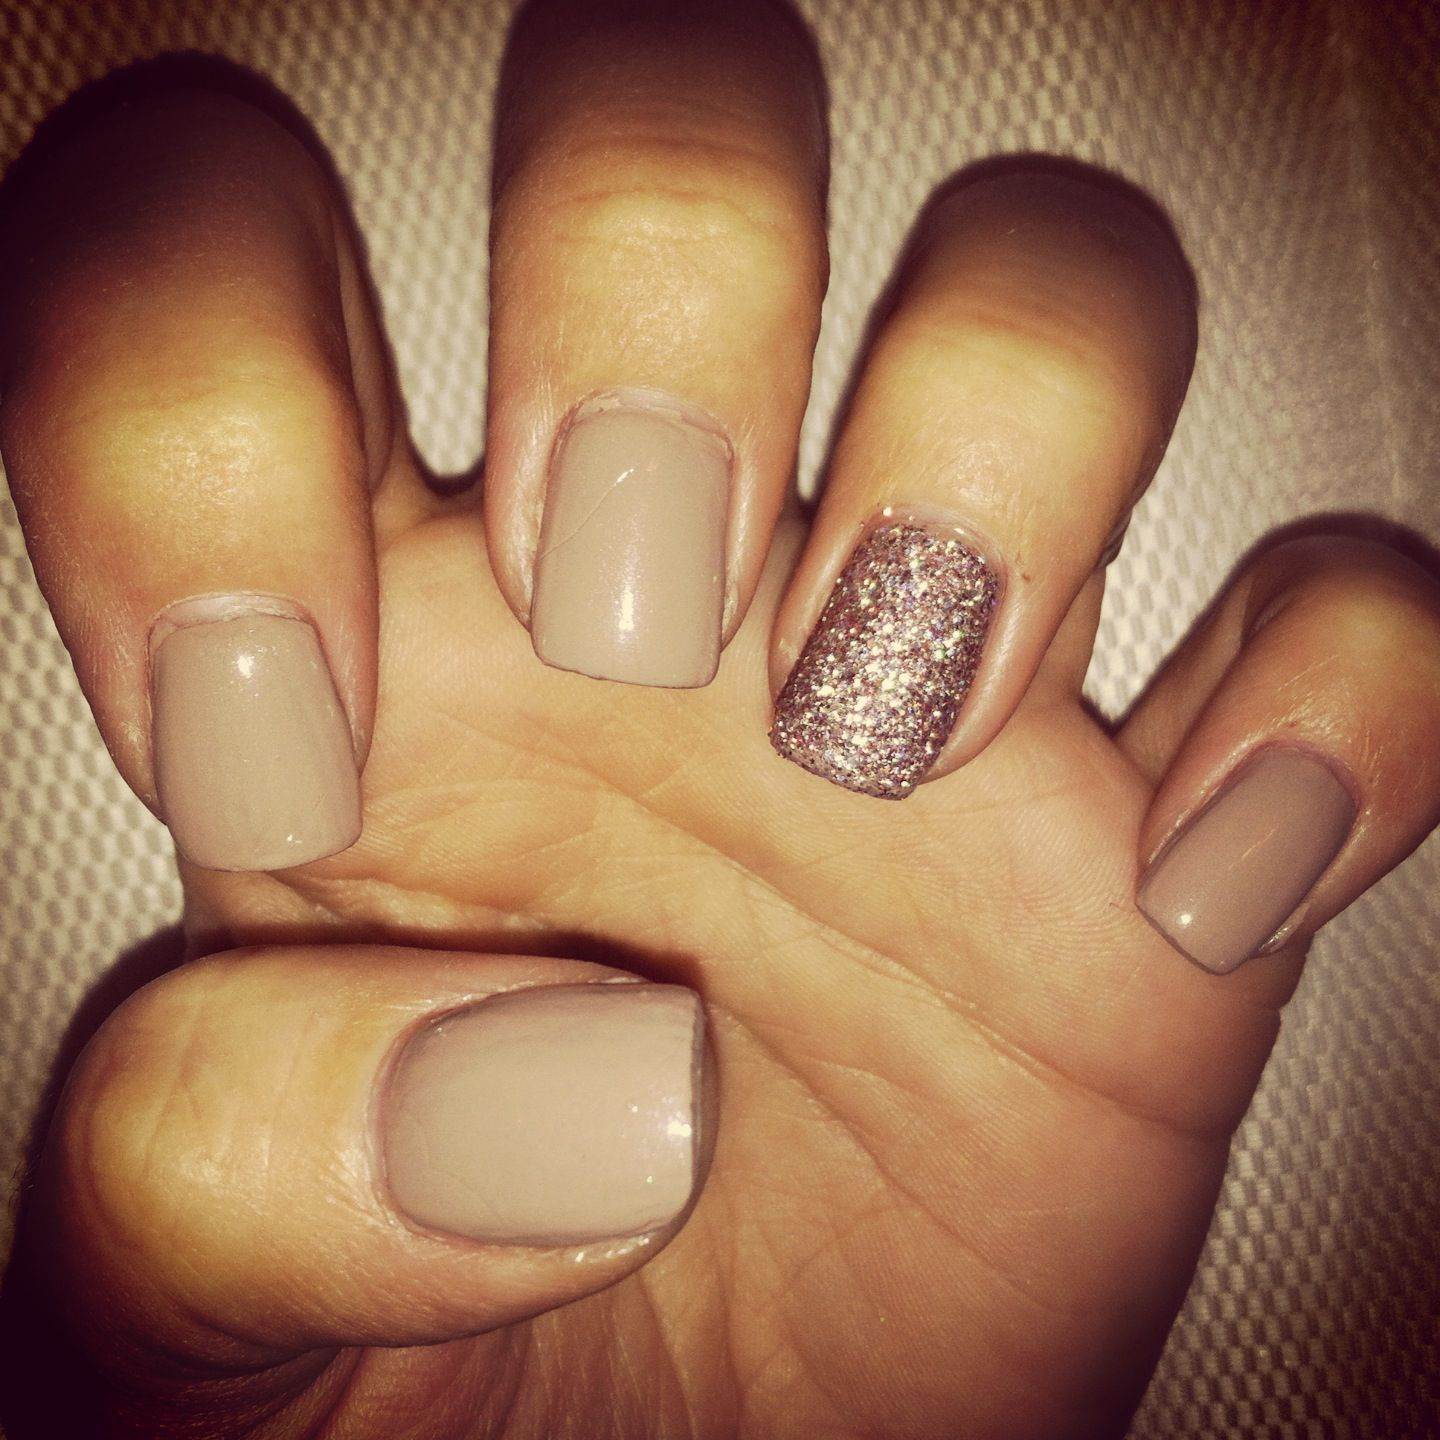 I'm in love with tan nail polish!! But the glitter. - I'm In Love With Tan Nail Polish!! But The Glitter....is A Pain To